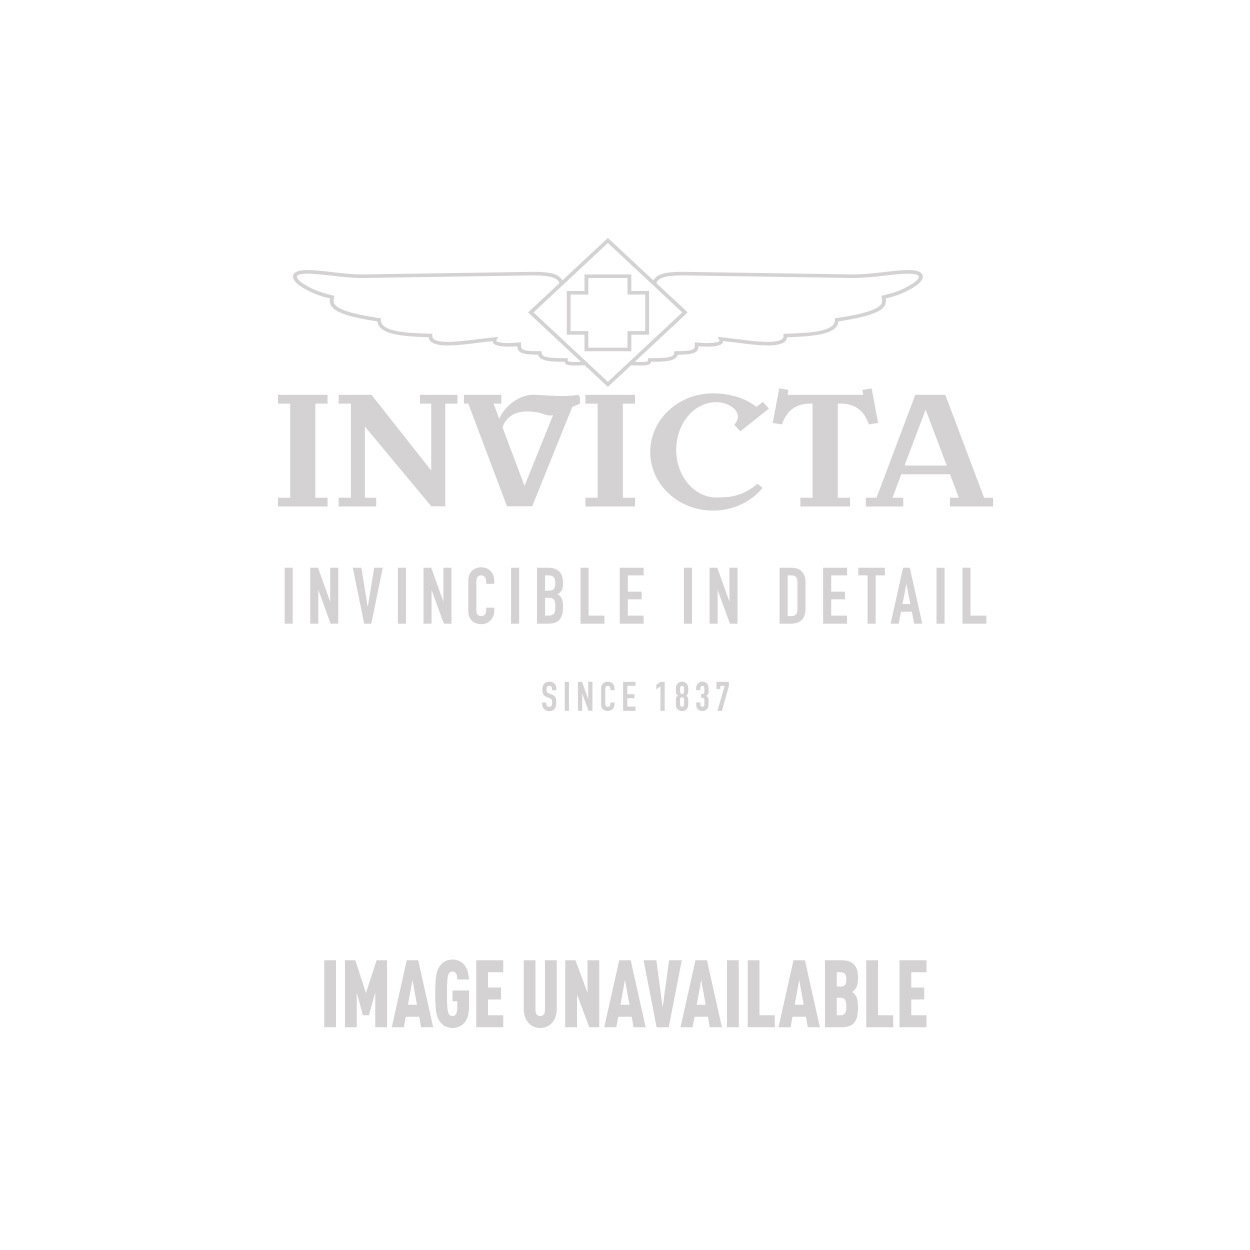 Invicta Coalition Forces Swiss Made Quartz Watch - Stainless Steel case Stainless Steel band - Model 17640